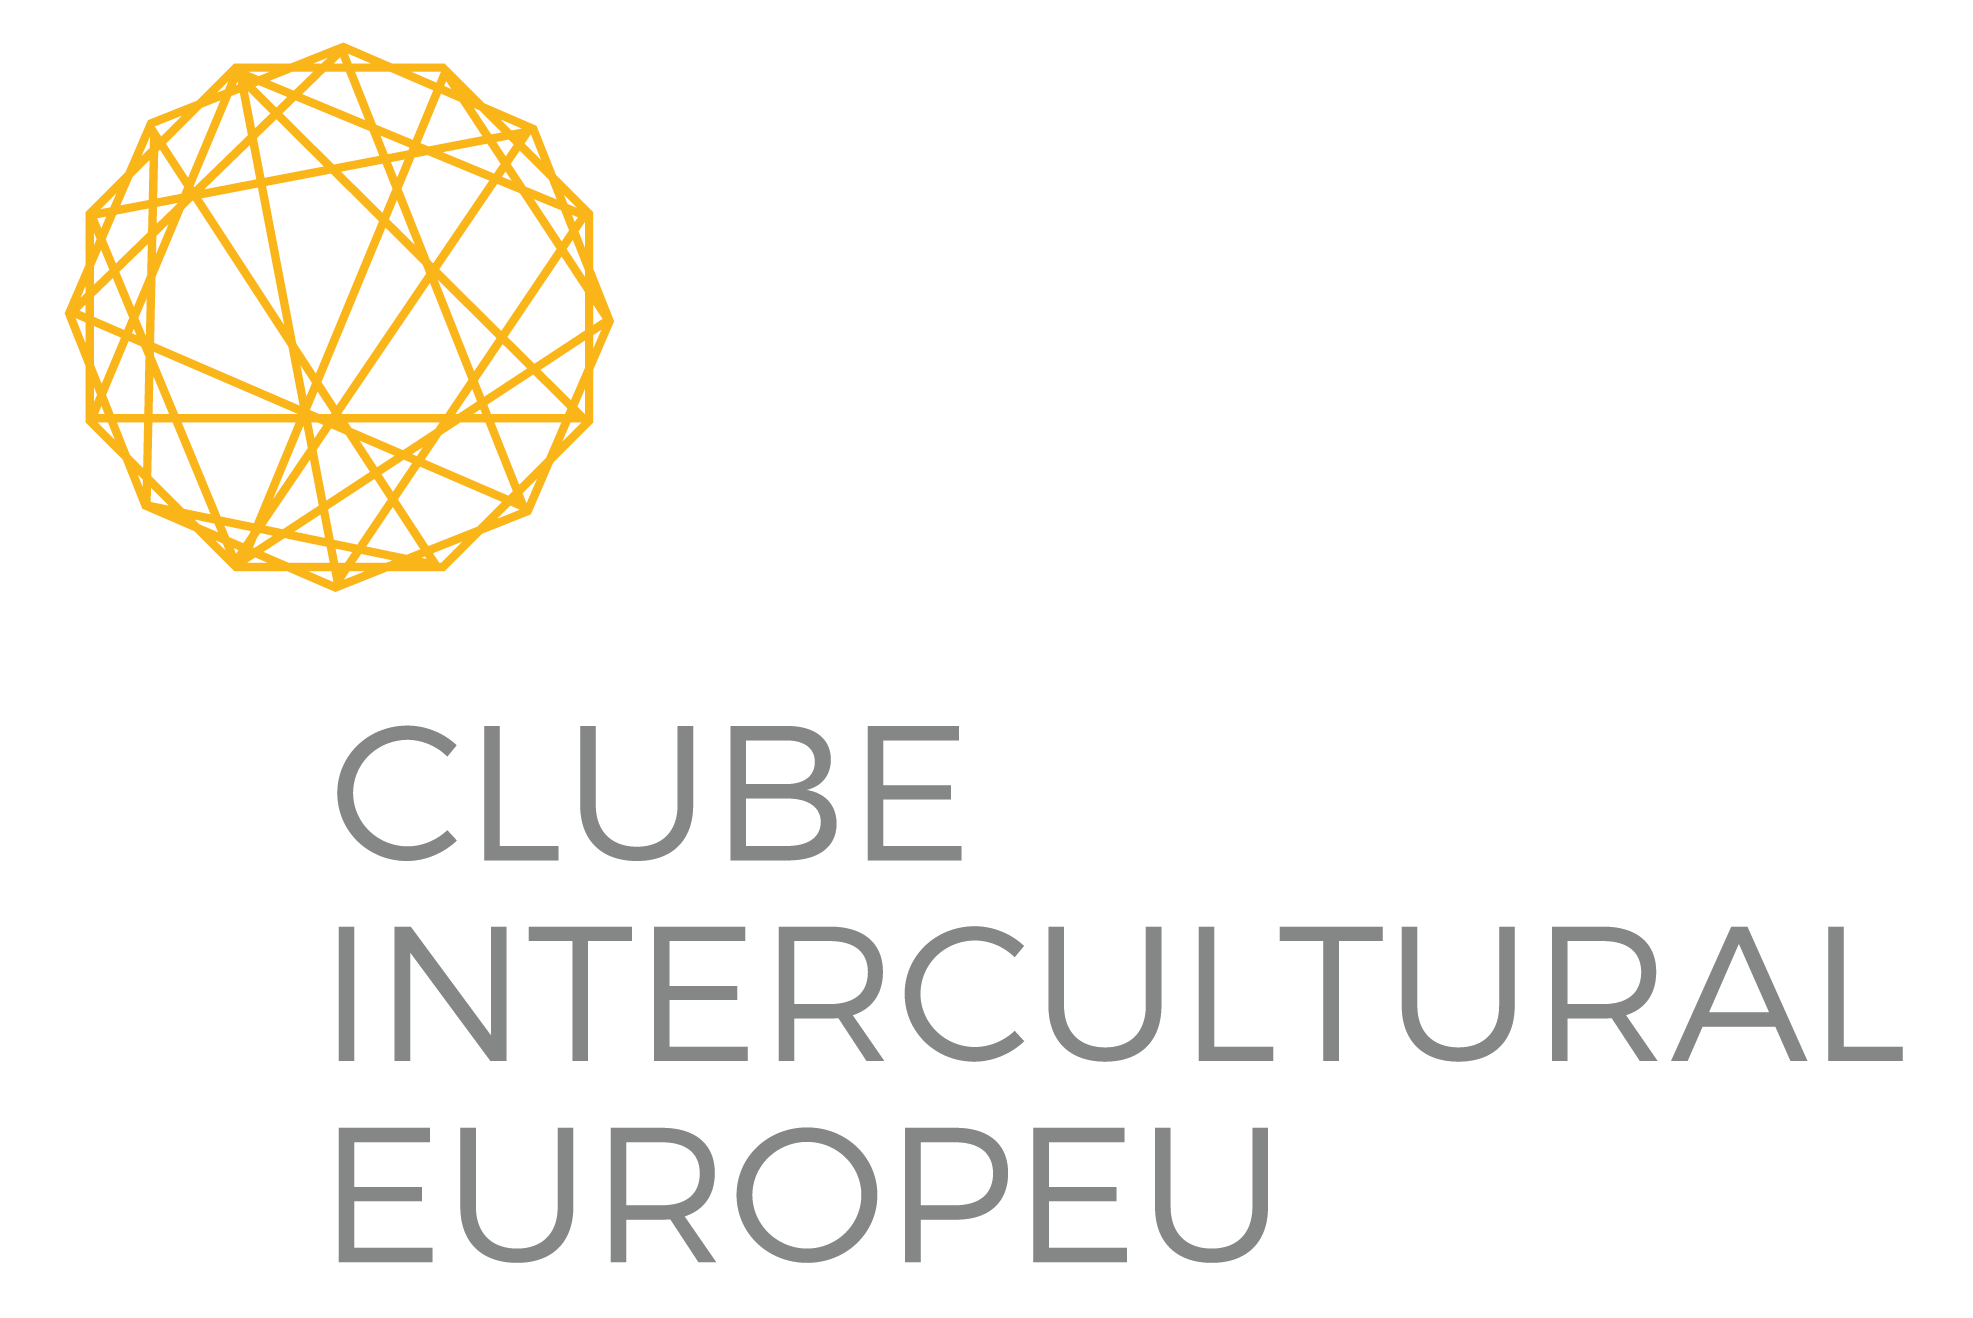 European Intercultural Club